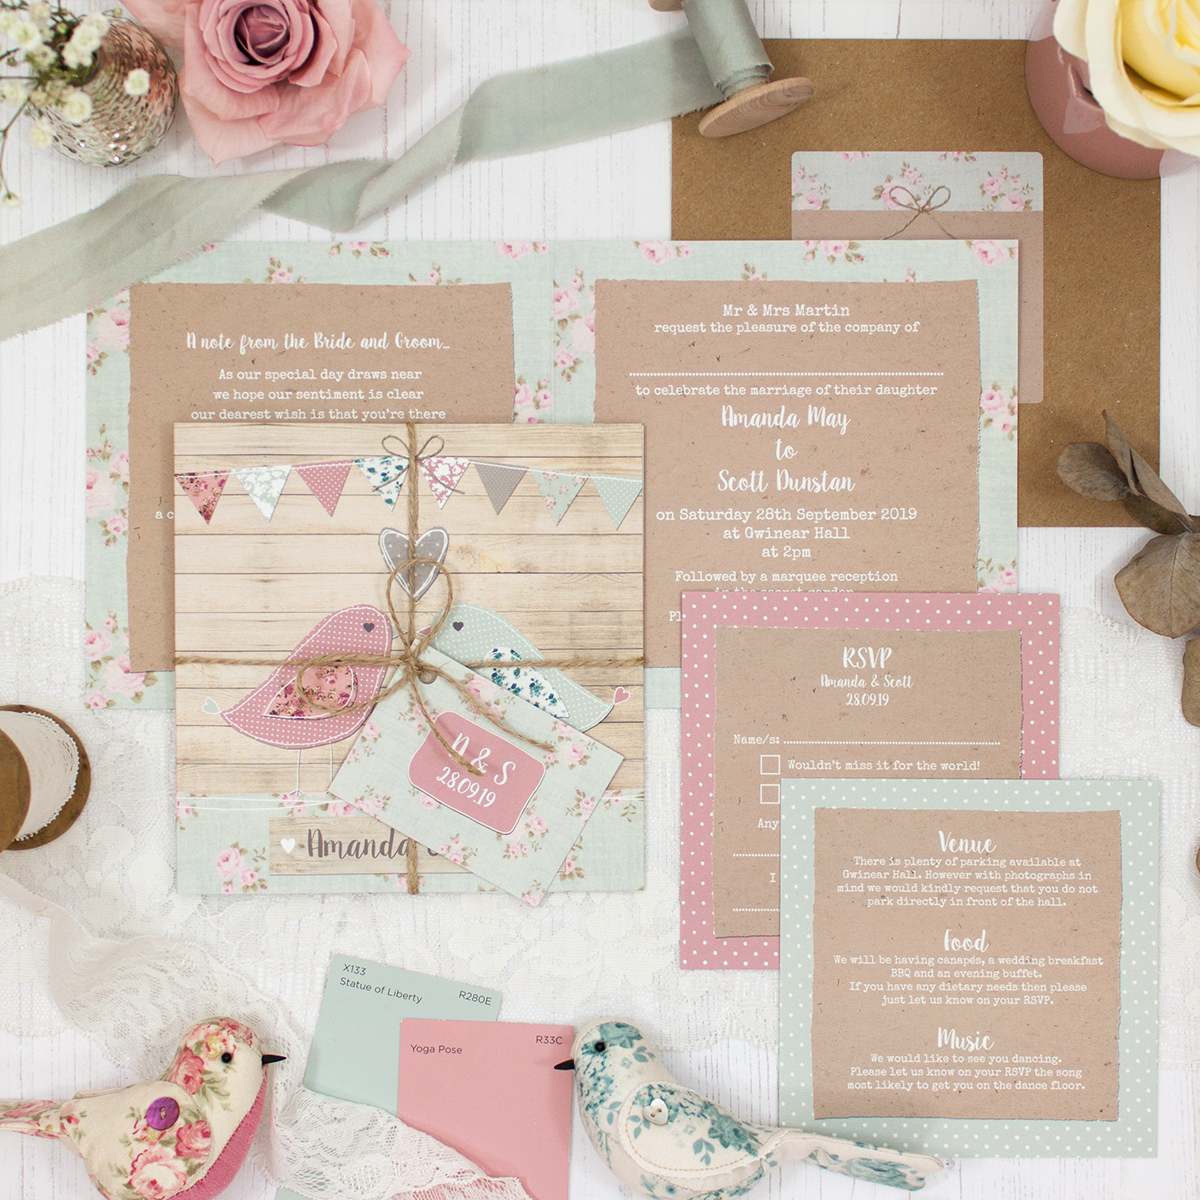 Lovebirds Wedding showing invitation